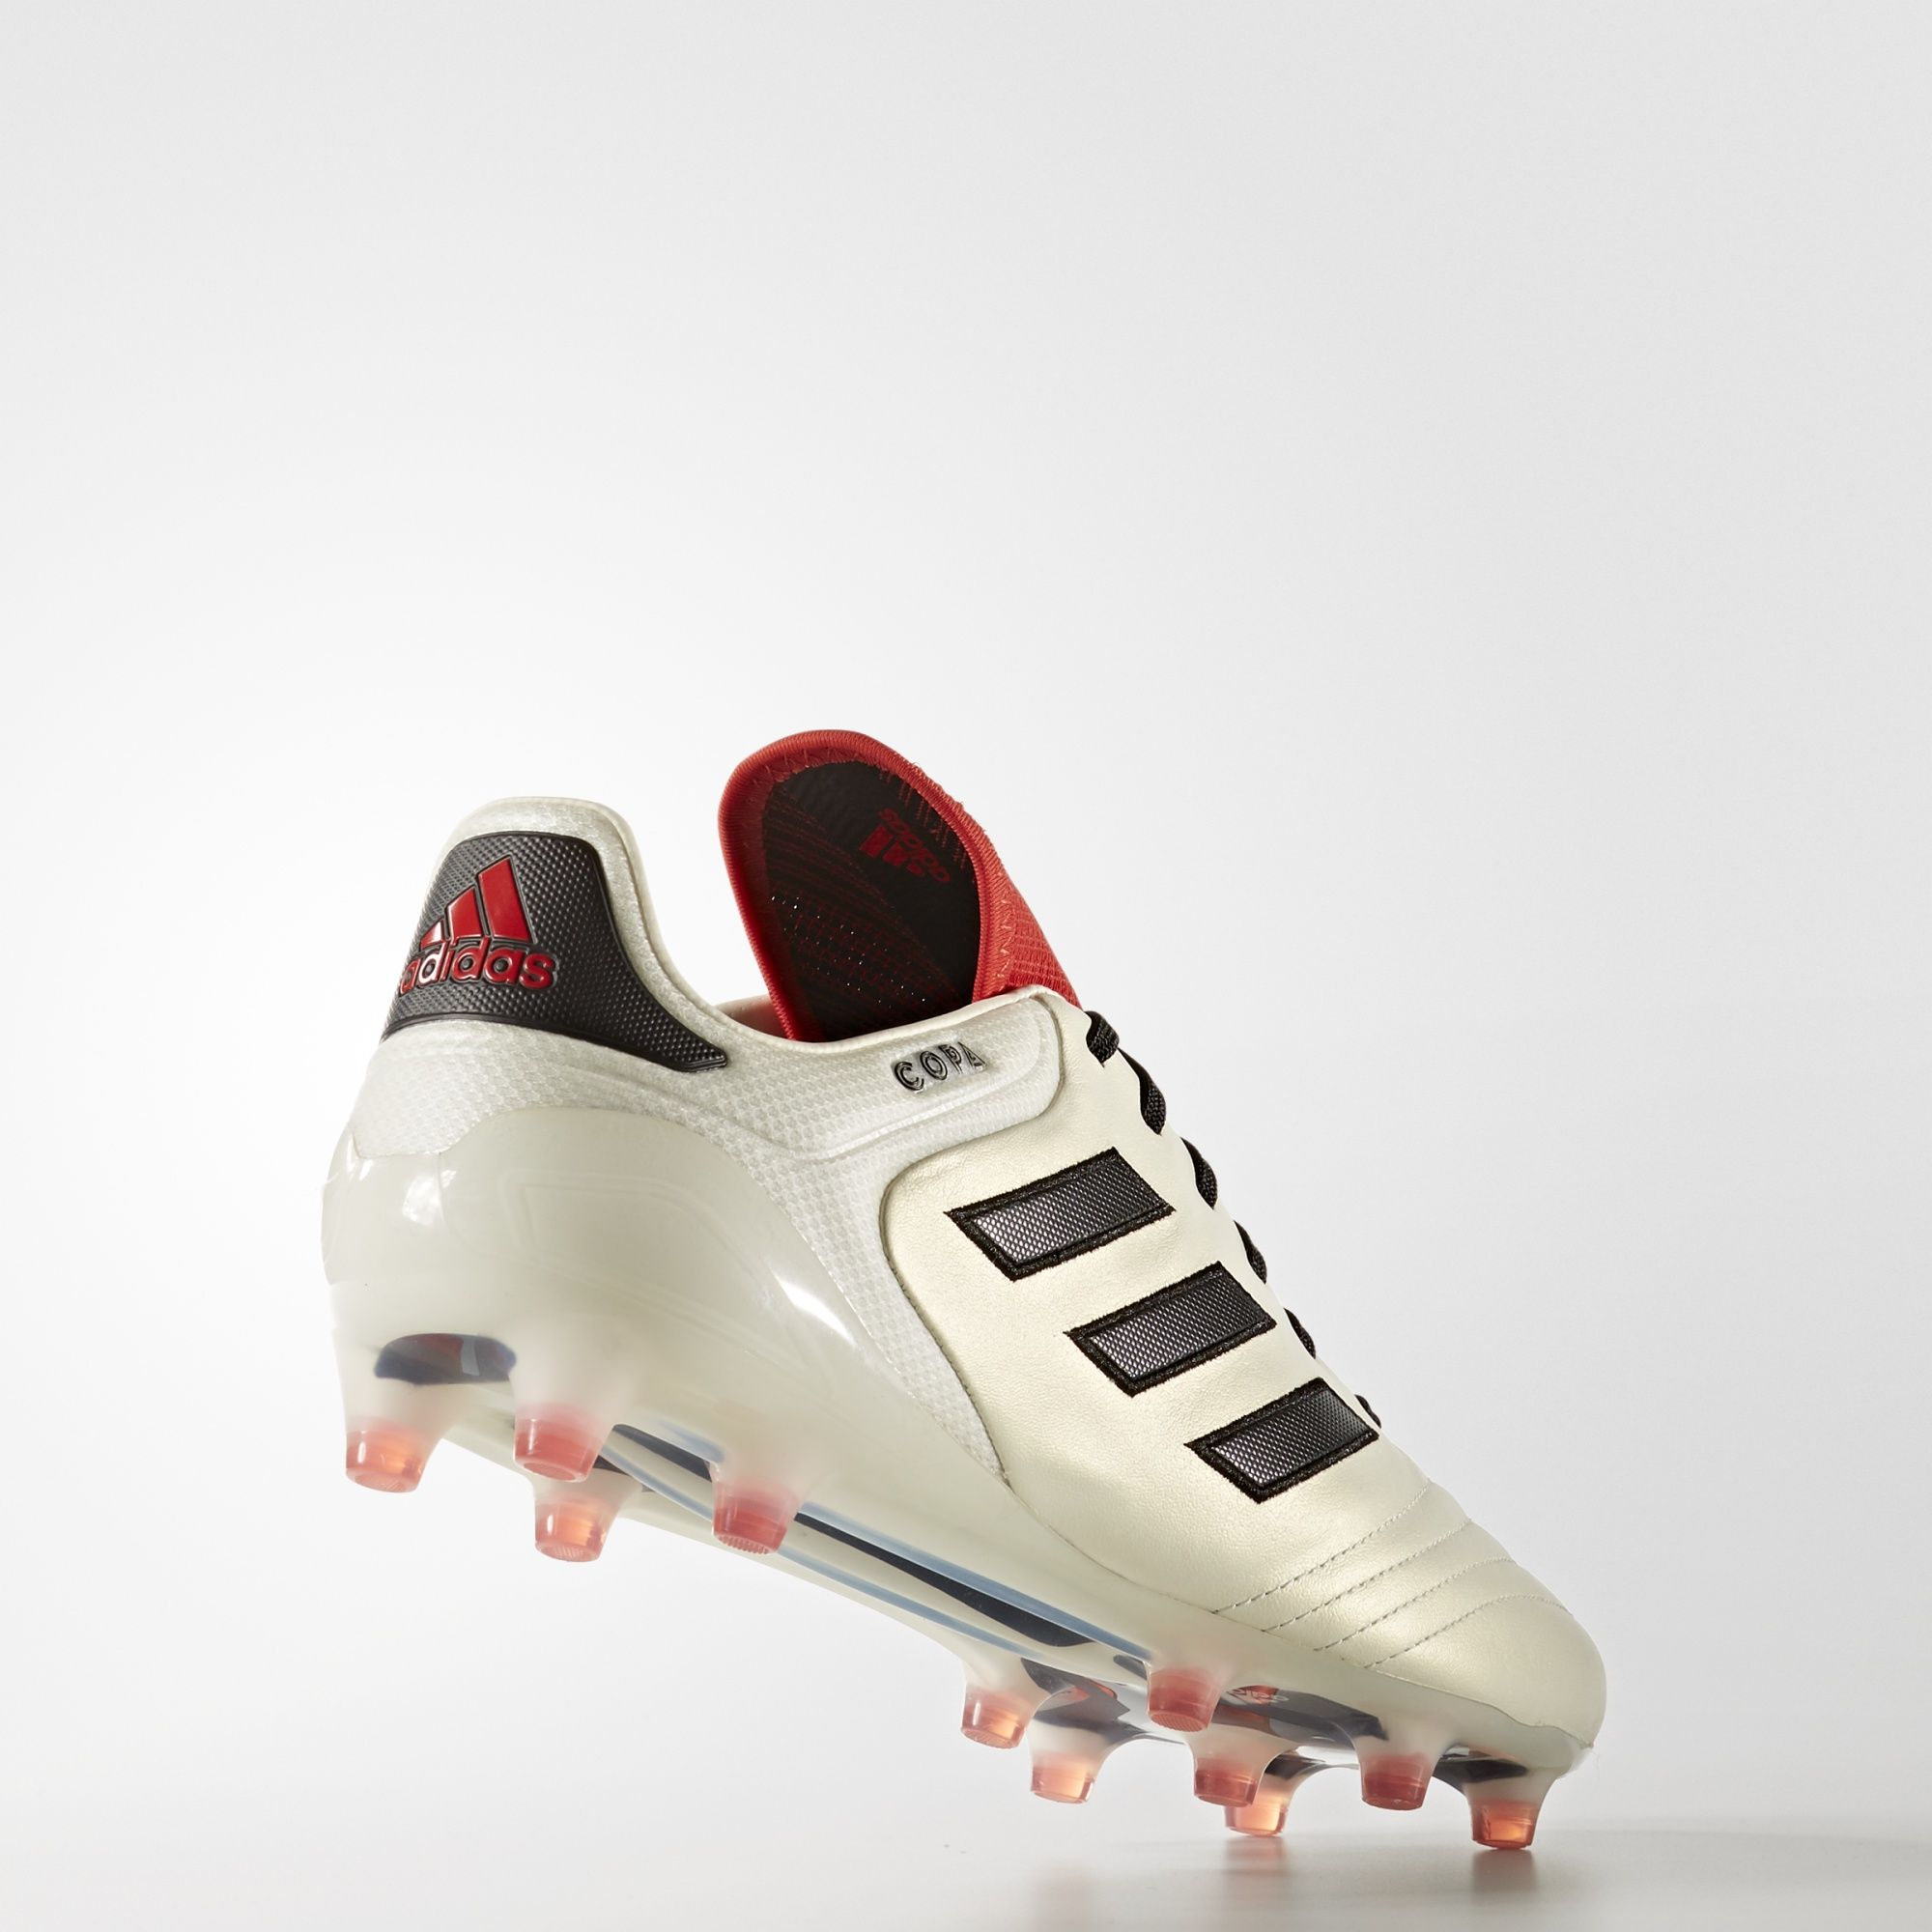 ... Click to enlarge image  adidas_copa_17_1_champagne_firm_ground_boots_off_white_core_black_red_e.jpg  ...